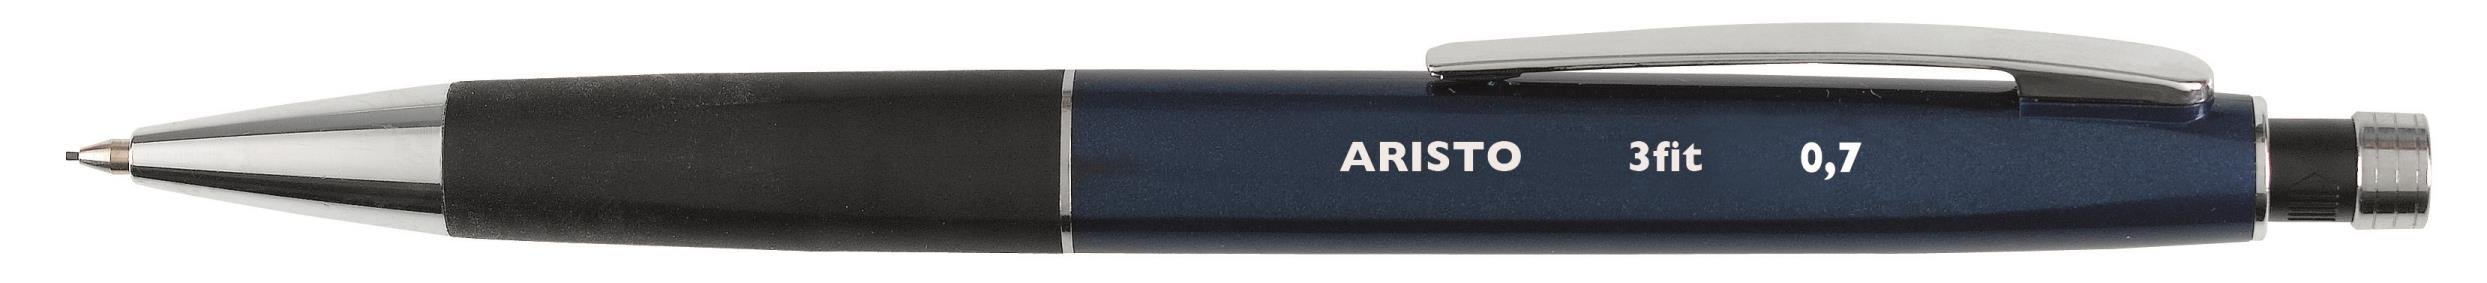 Aristo 3fit AR85307 Fine-Tip Pen 0.7mm Pack of 10 Blue / Black by Aristo (Image #1)